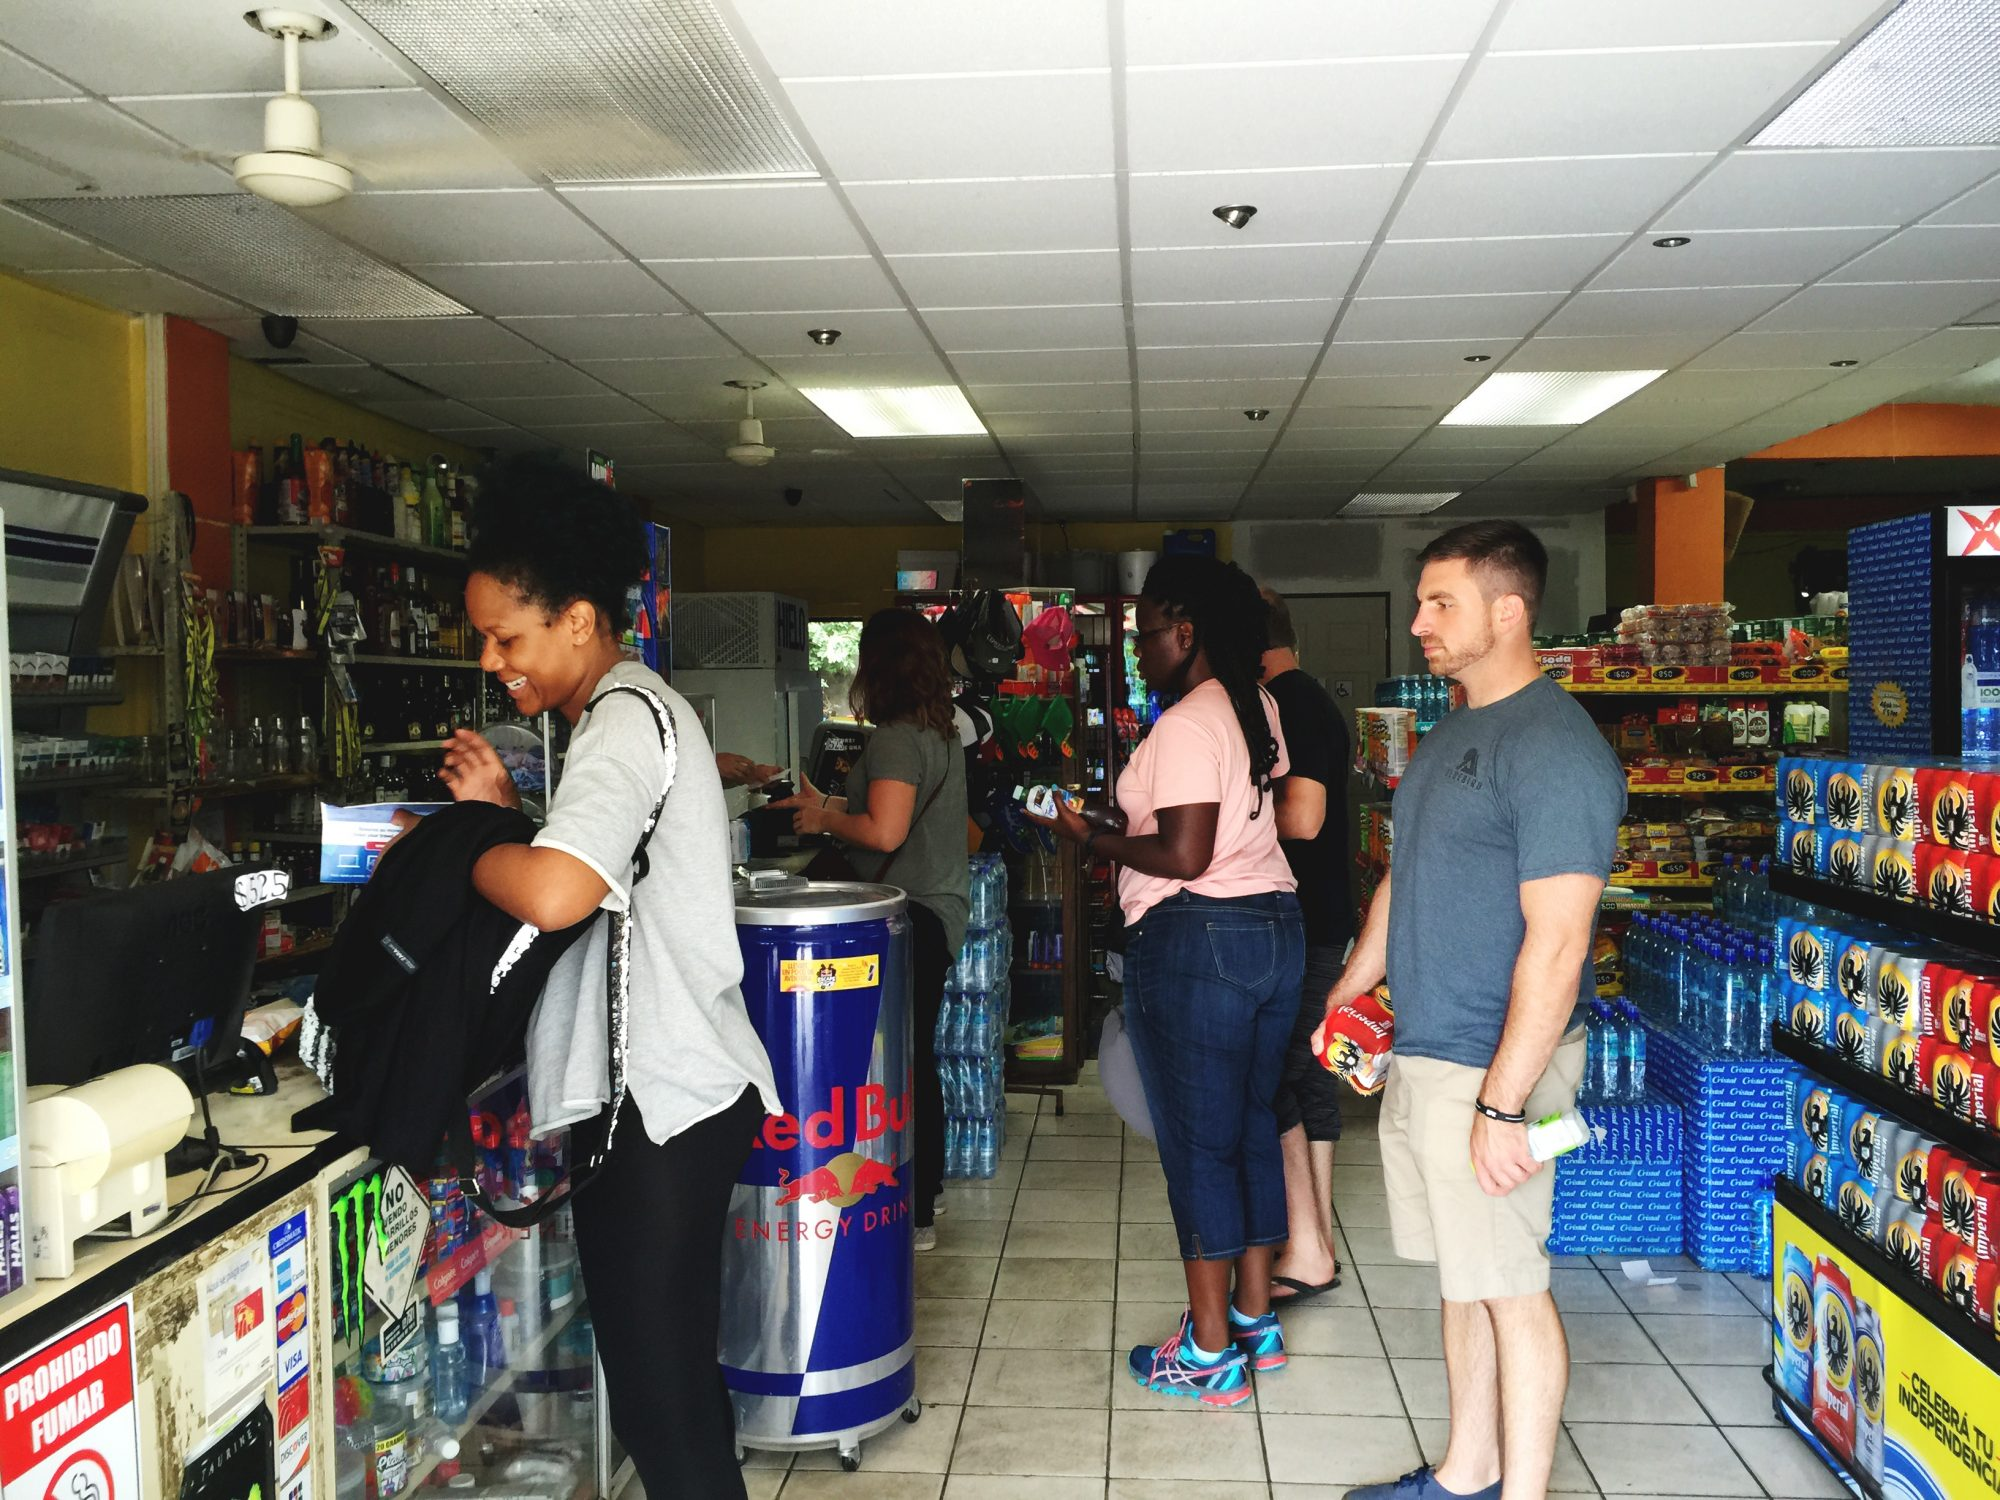 A man and woman wait to check out at a Costa Rican soda